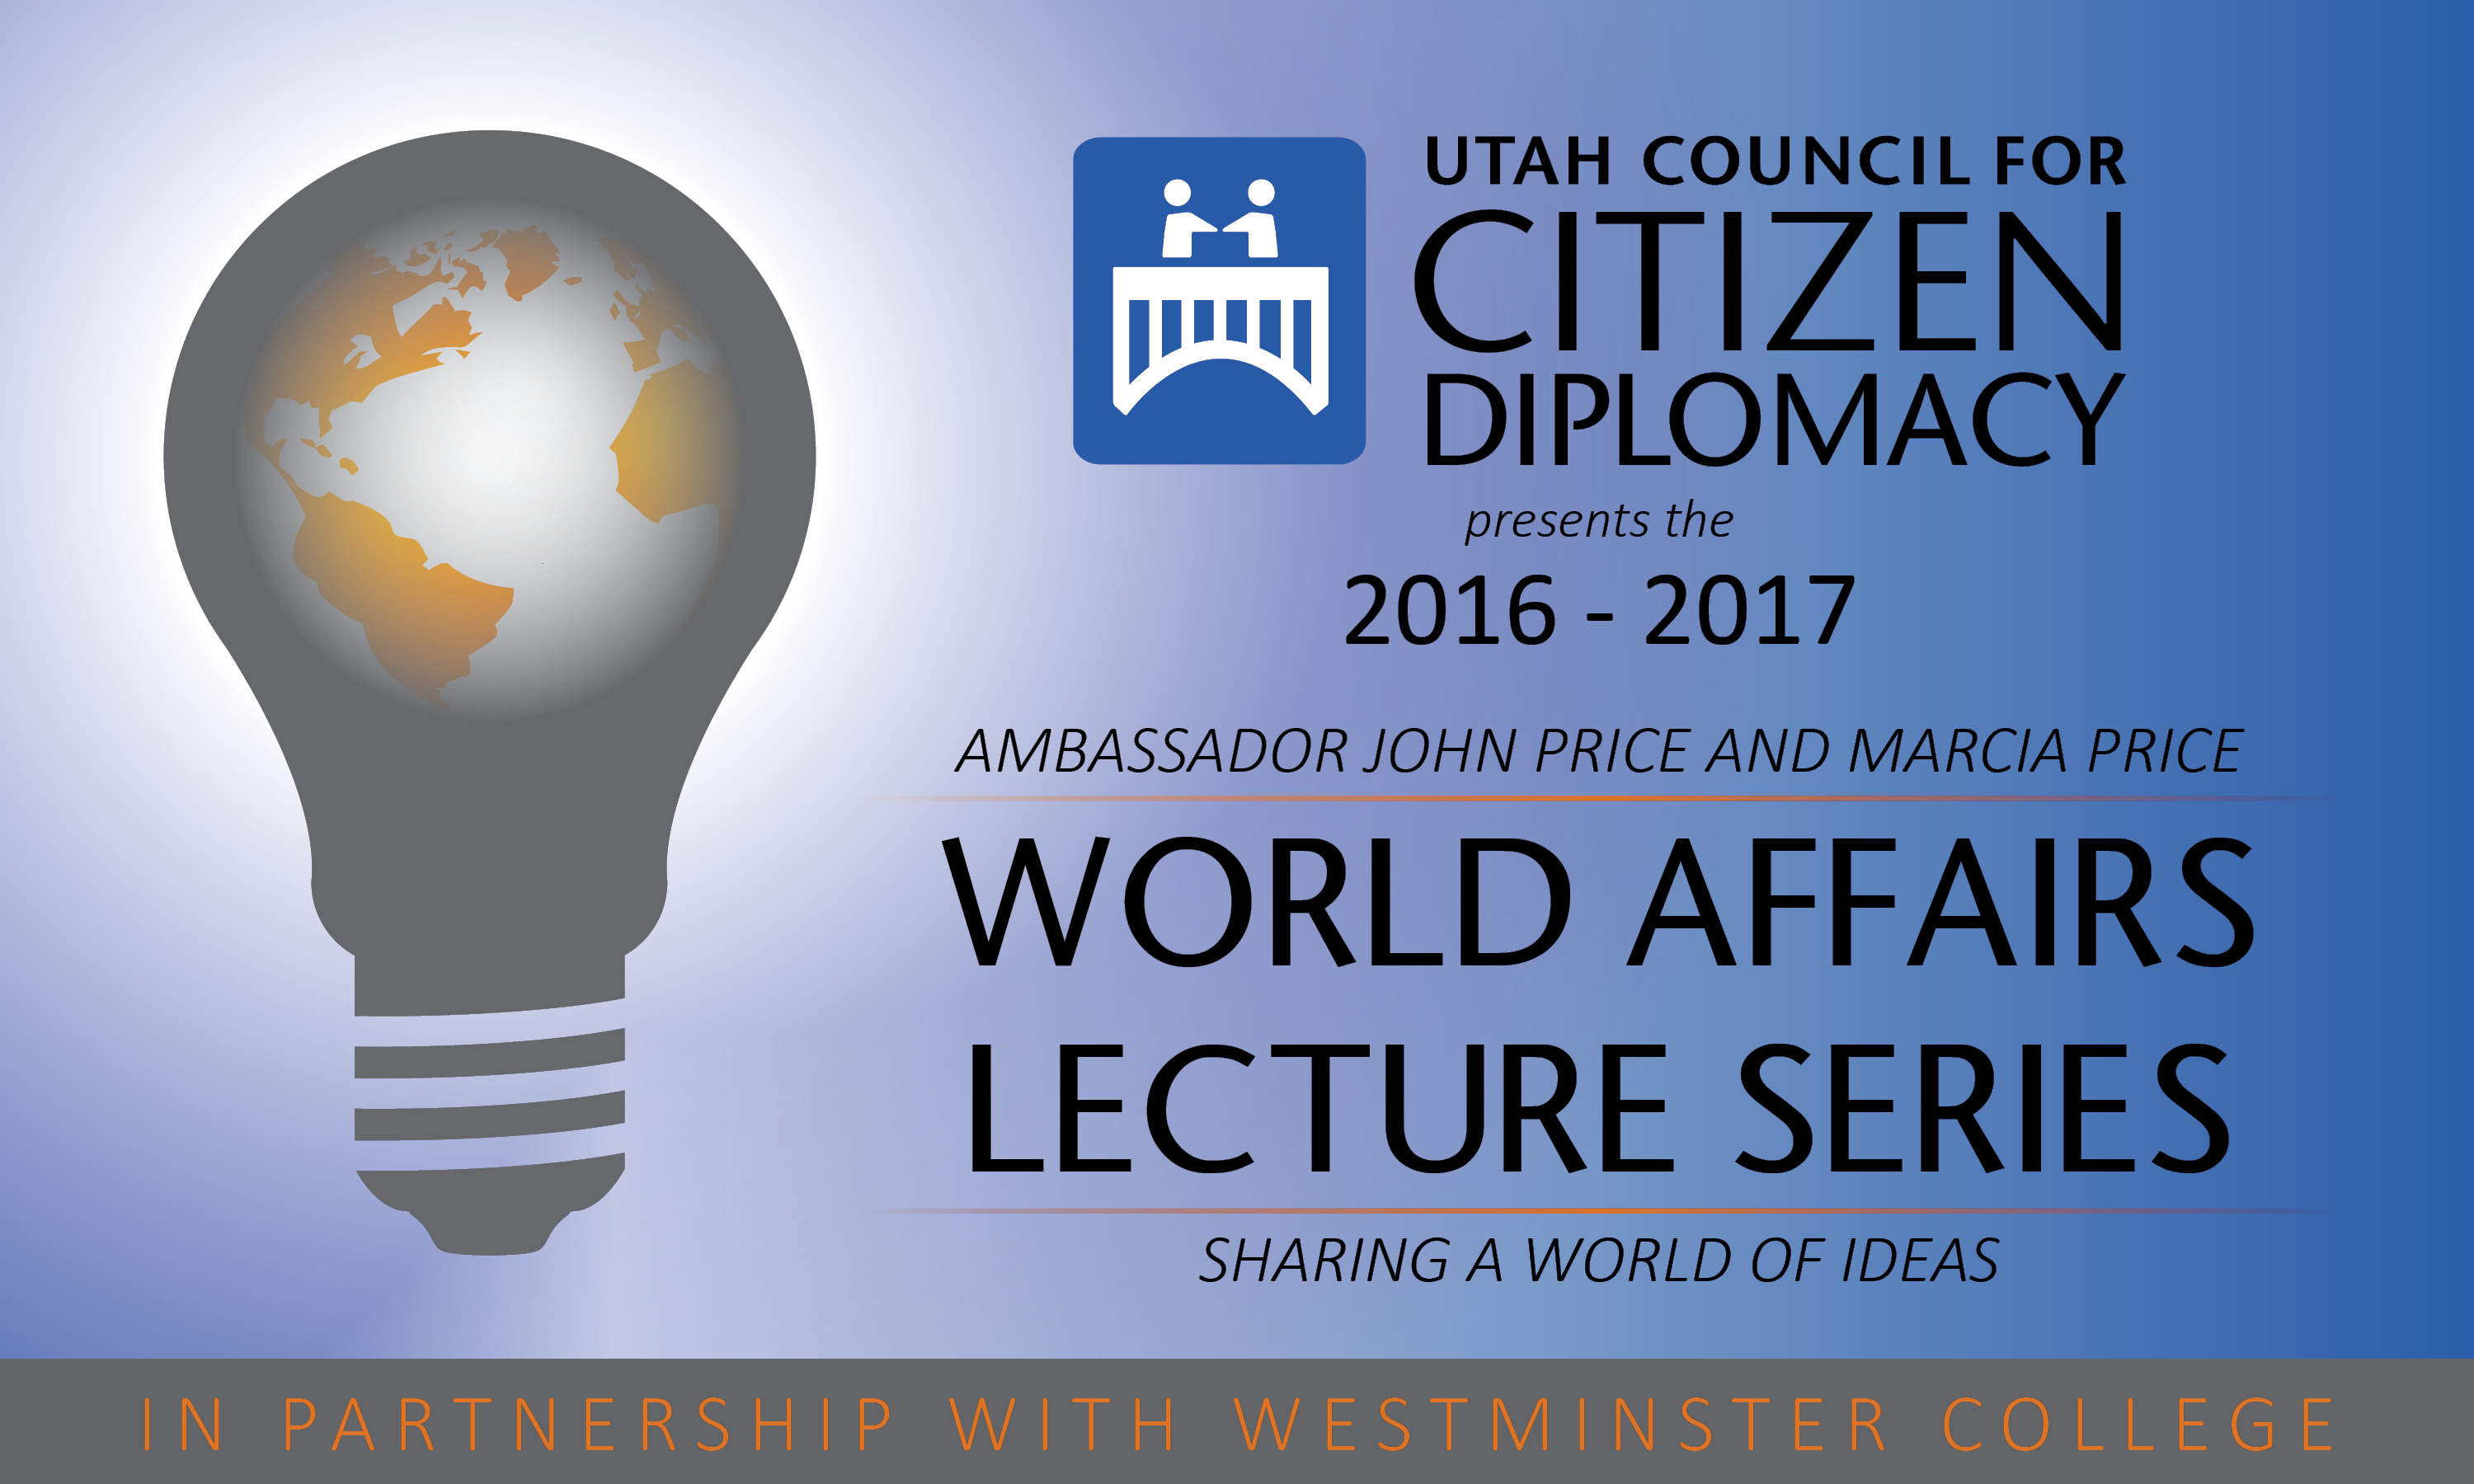 World Affairs Lecture Series_Utah Council for Citizen Diplomacy